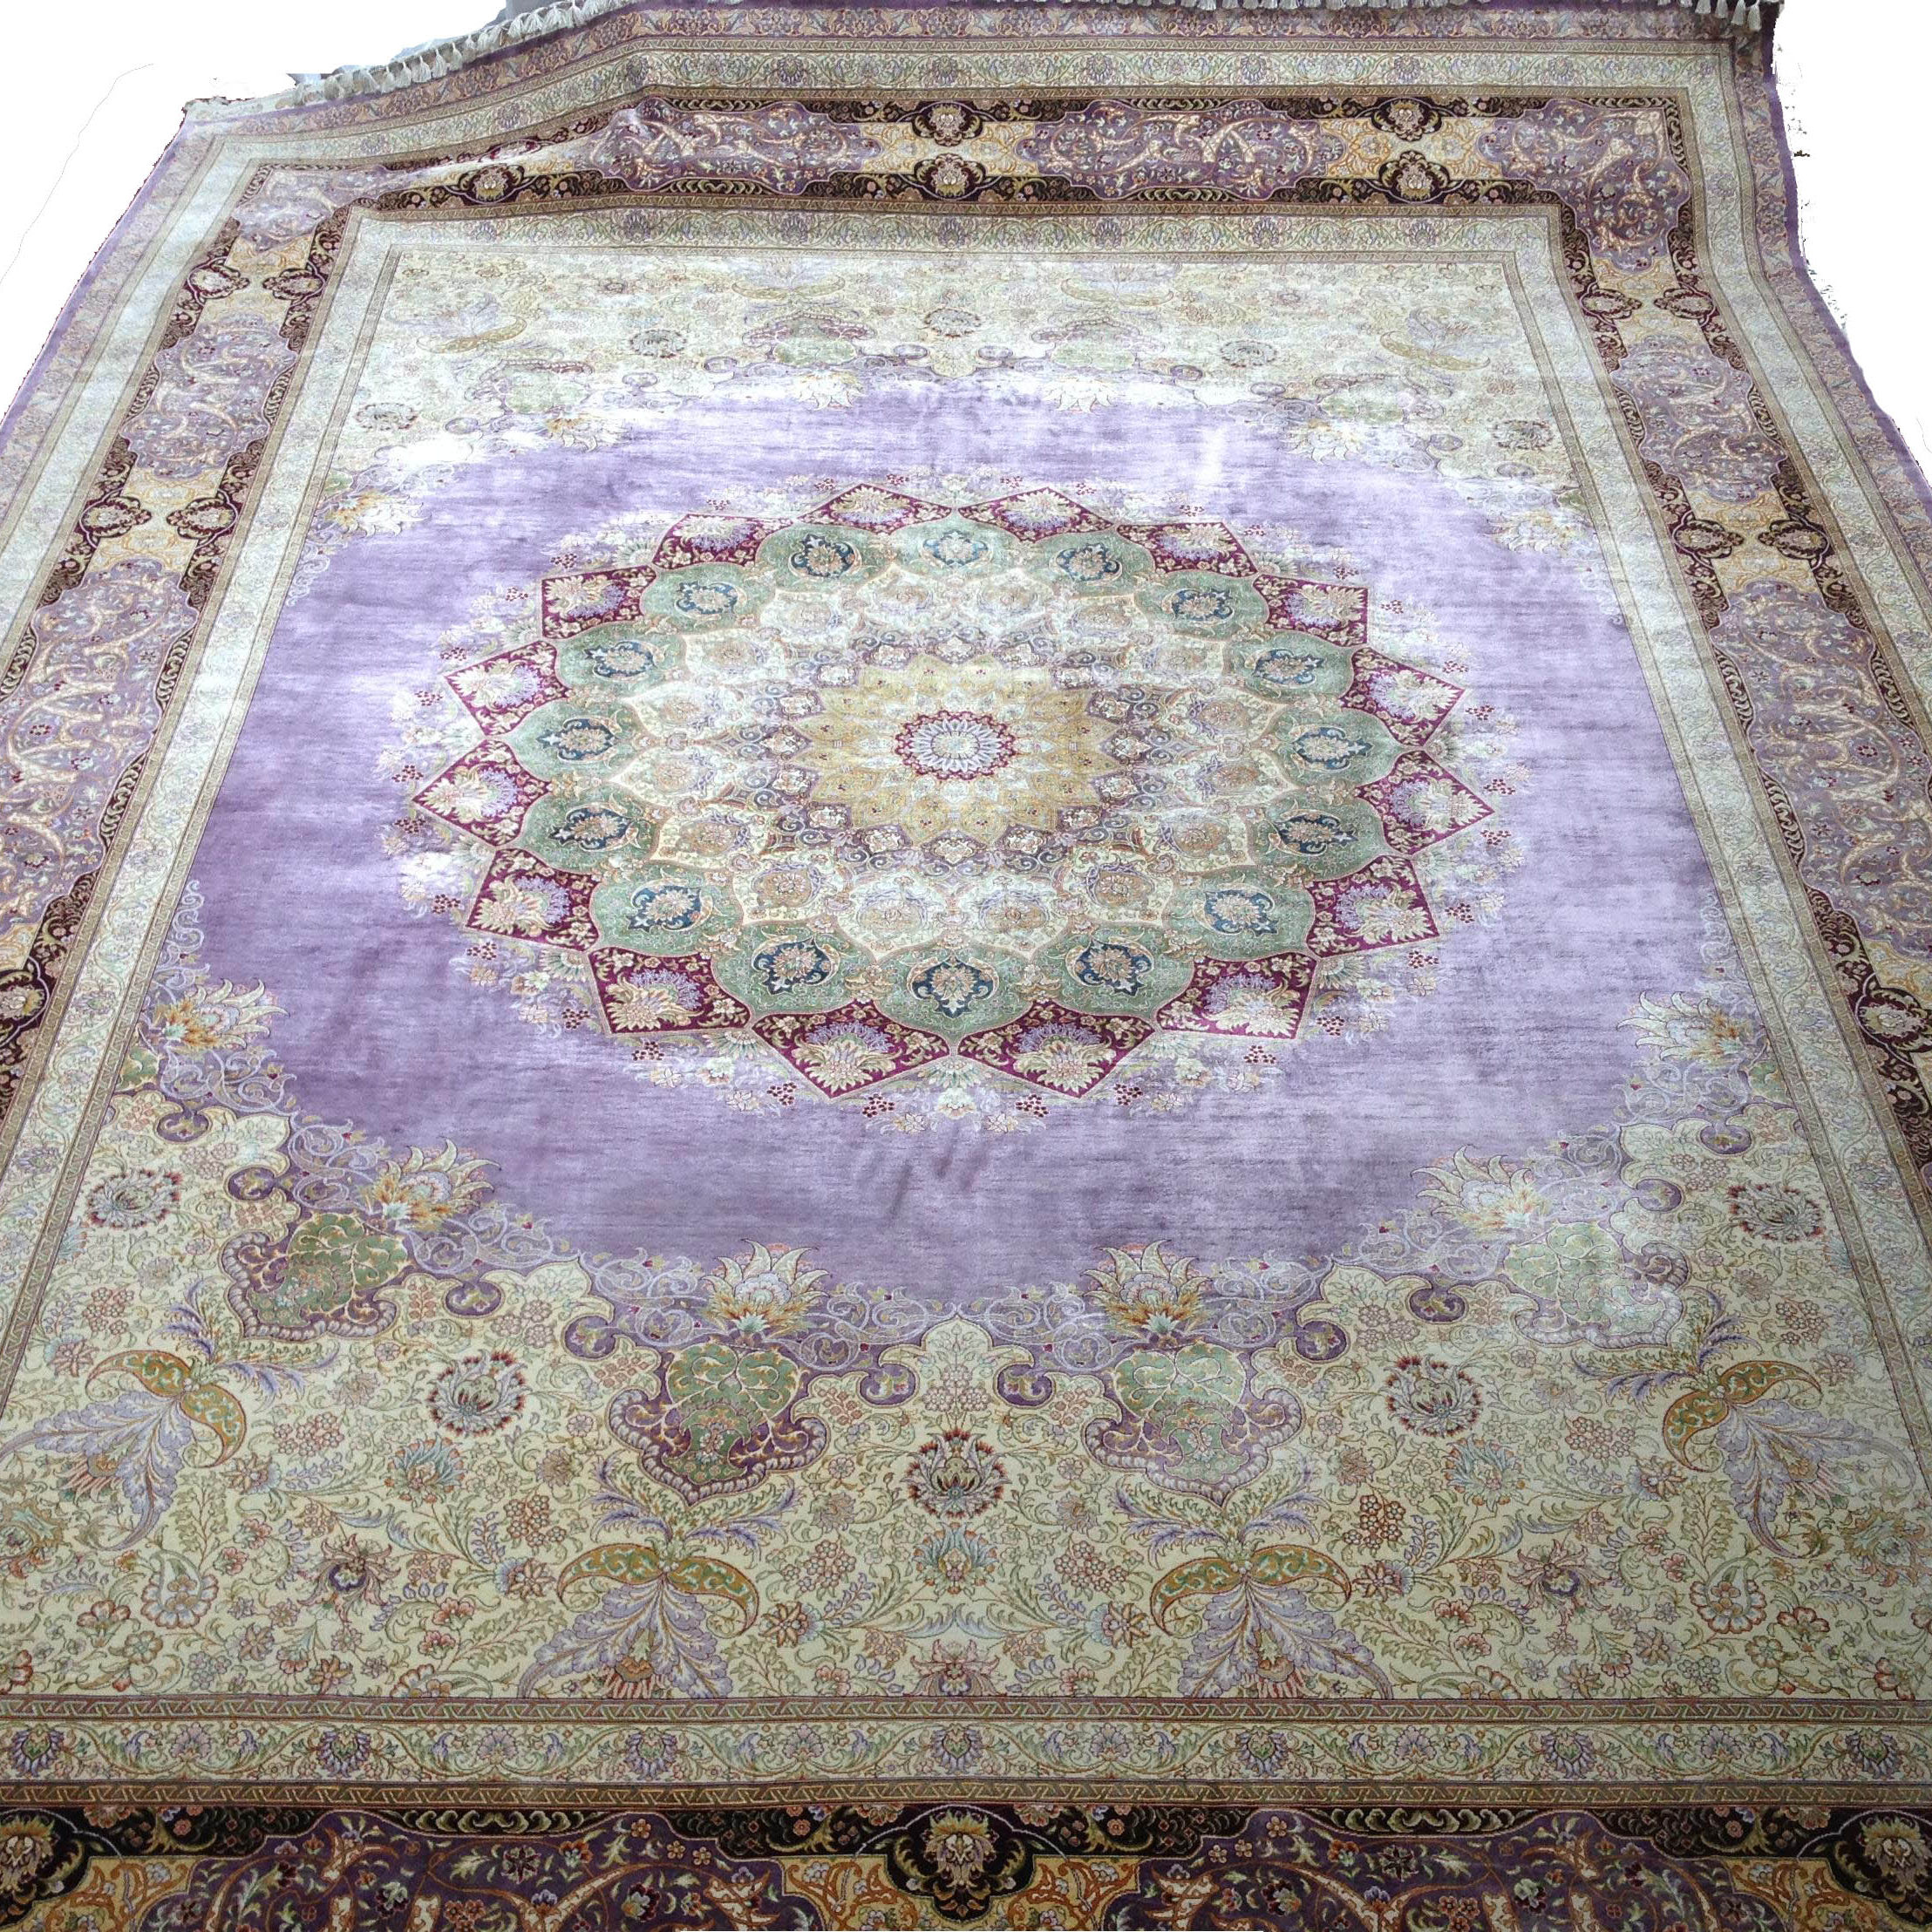 persian princess pure silk turkish hand knotted nepali antique large handmade indoor ourdoor area decorative carpets rugs